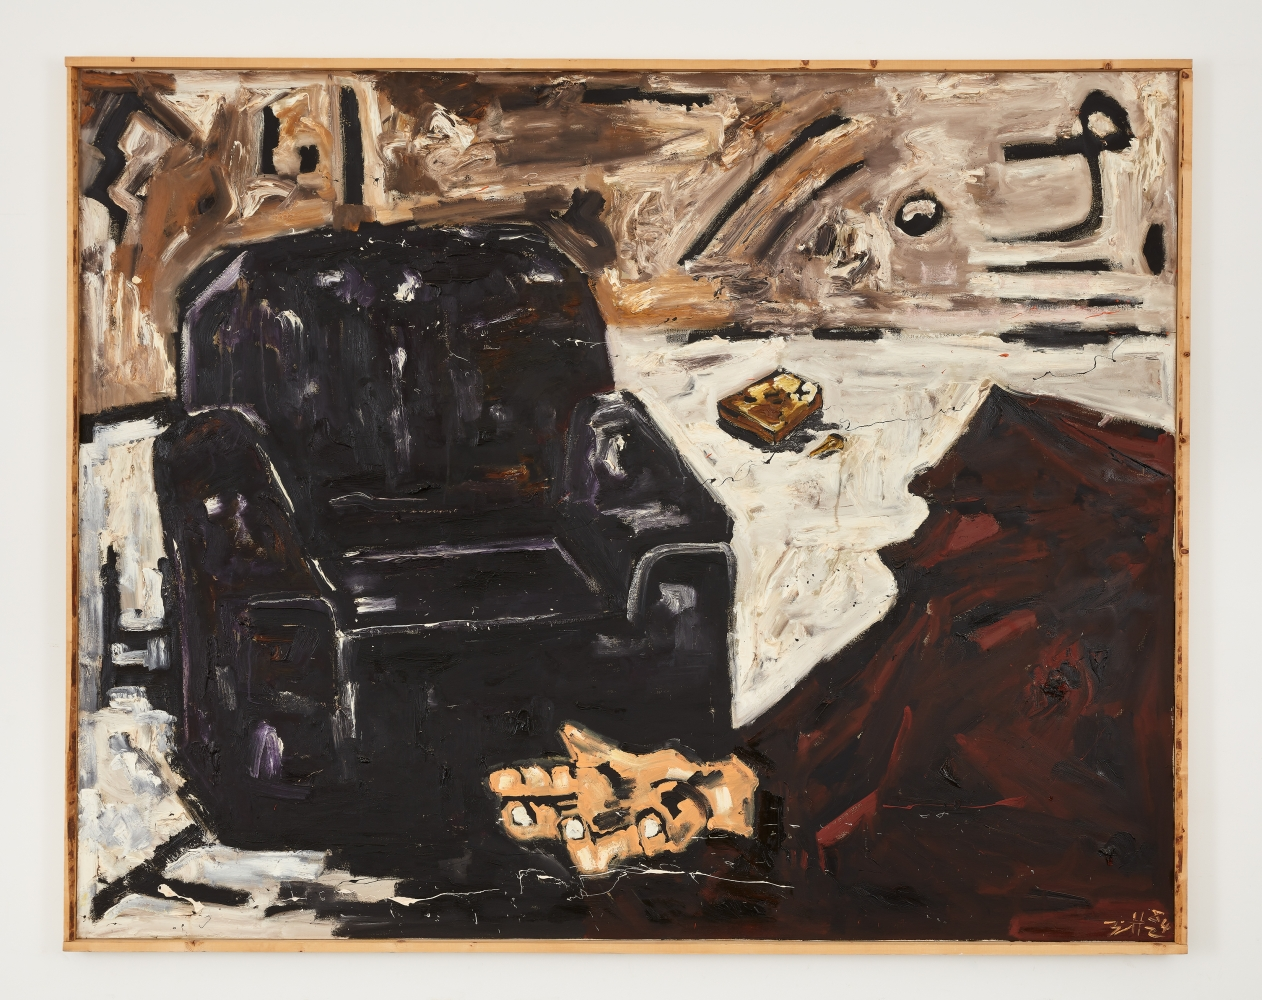 Oil on canvas work by Werner Büttner featuring a black armchair and a hand